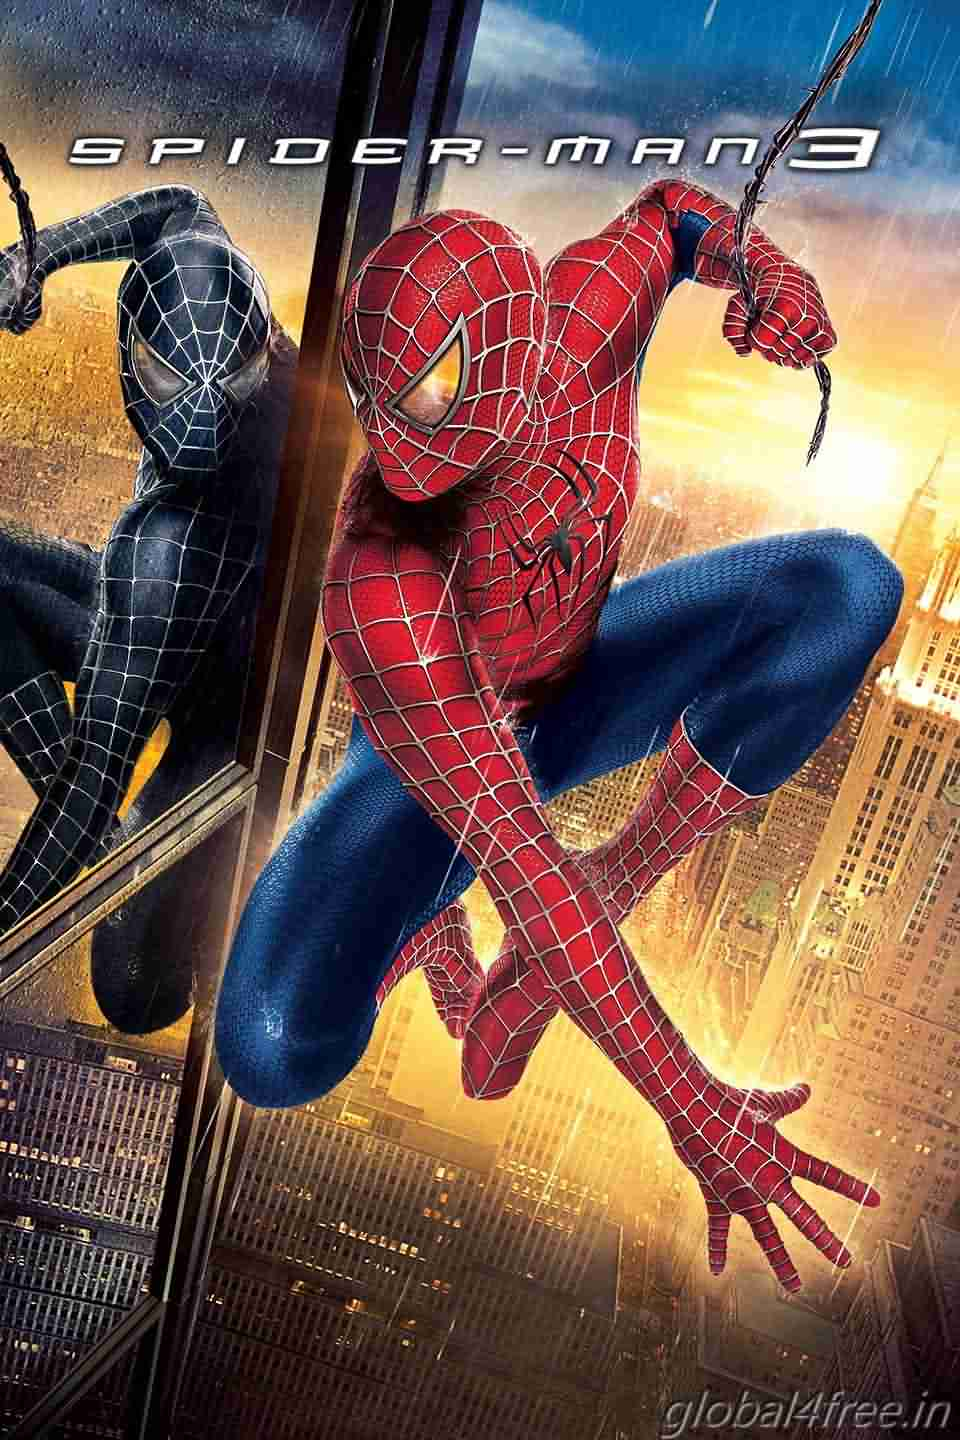 SPIDER MAN 3 BRRIP 720P DUAL AUDIO MOVIES DOWNLOAD